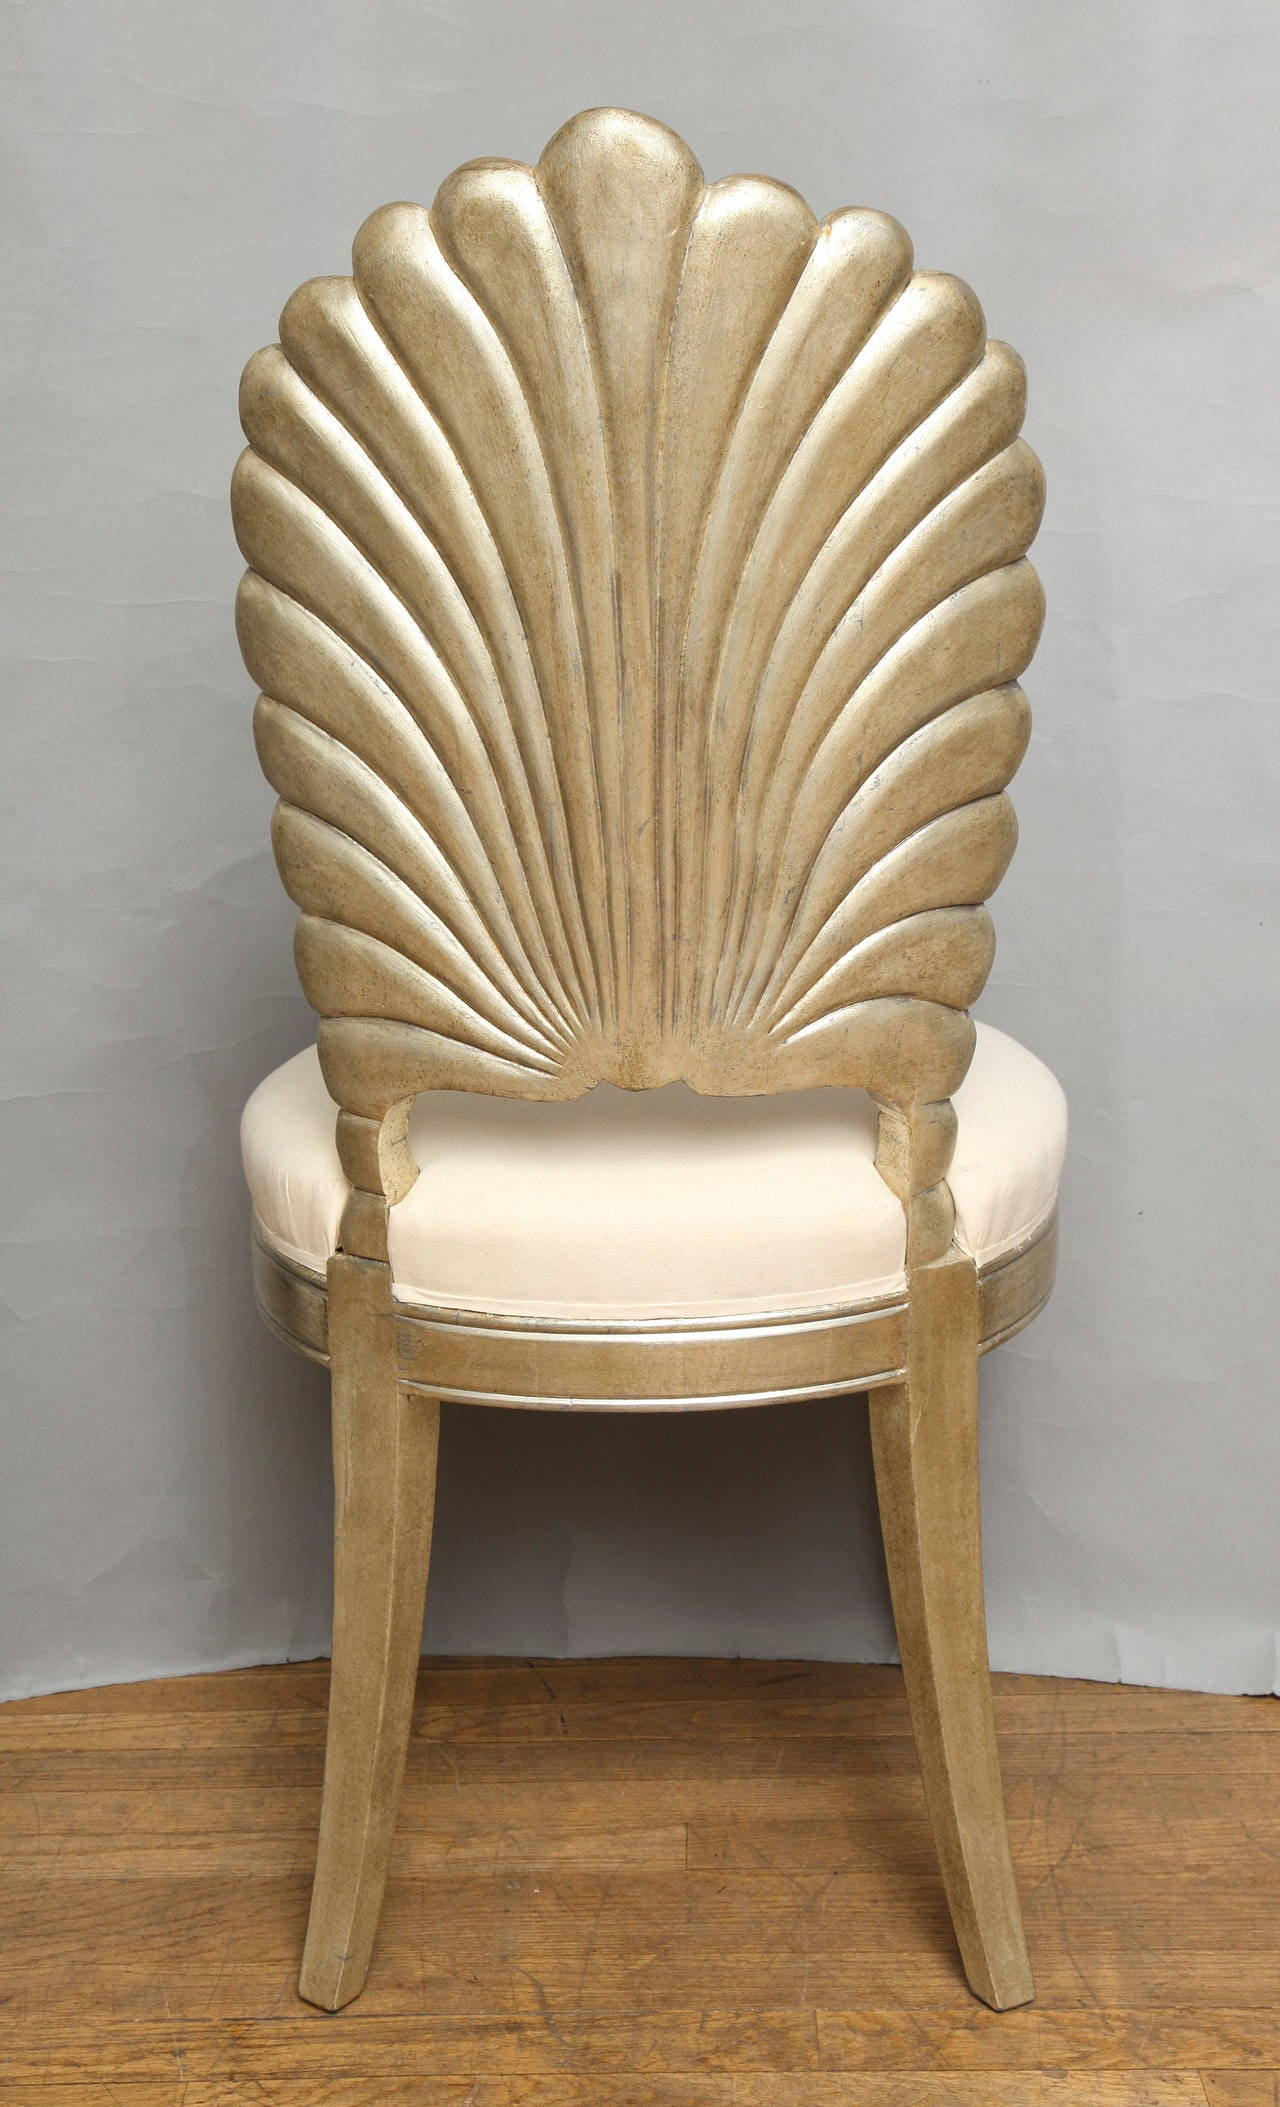 white shell chair duncan phyfe dining chairs an italian back carved and silver leafed for